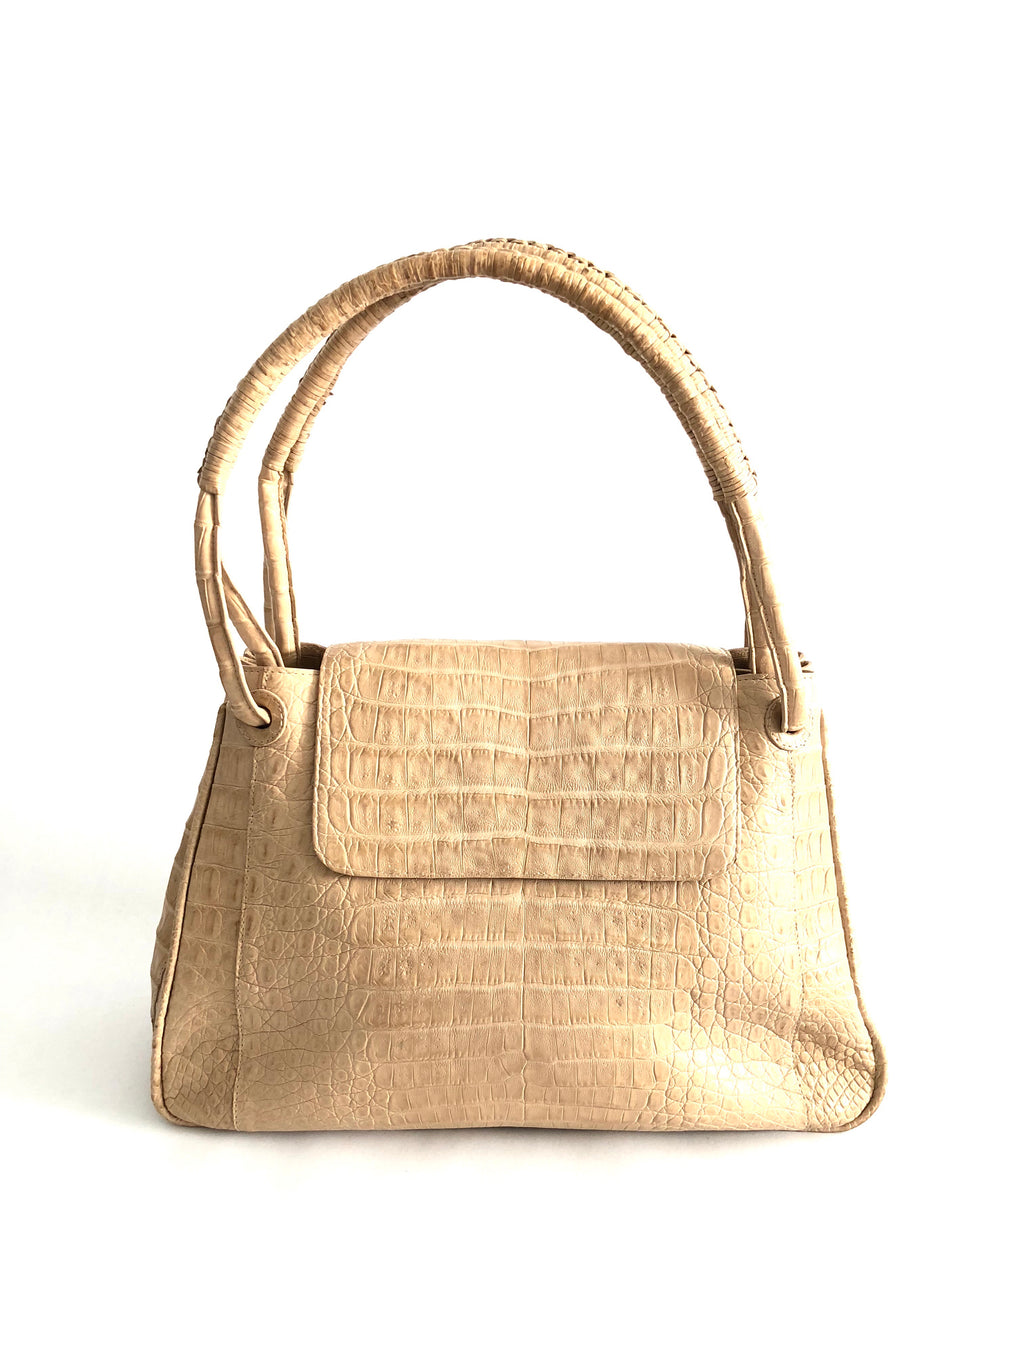 Nancy Gonzales Cream Crocodile Handbag